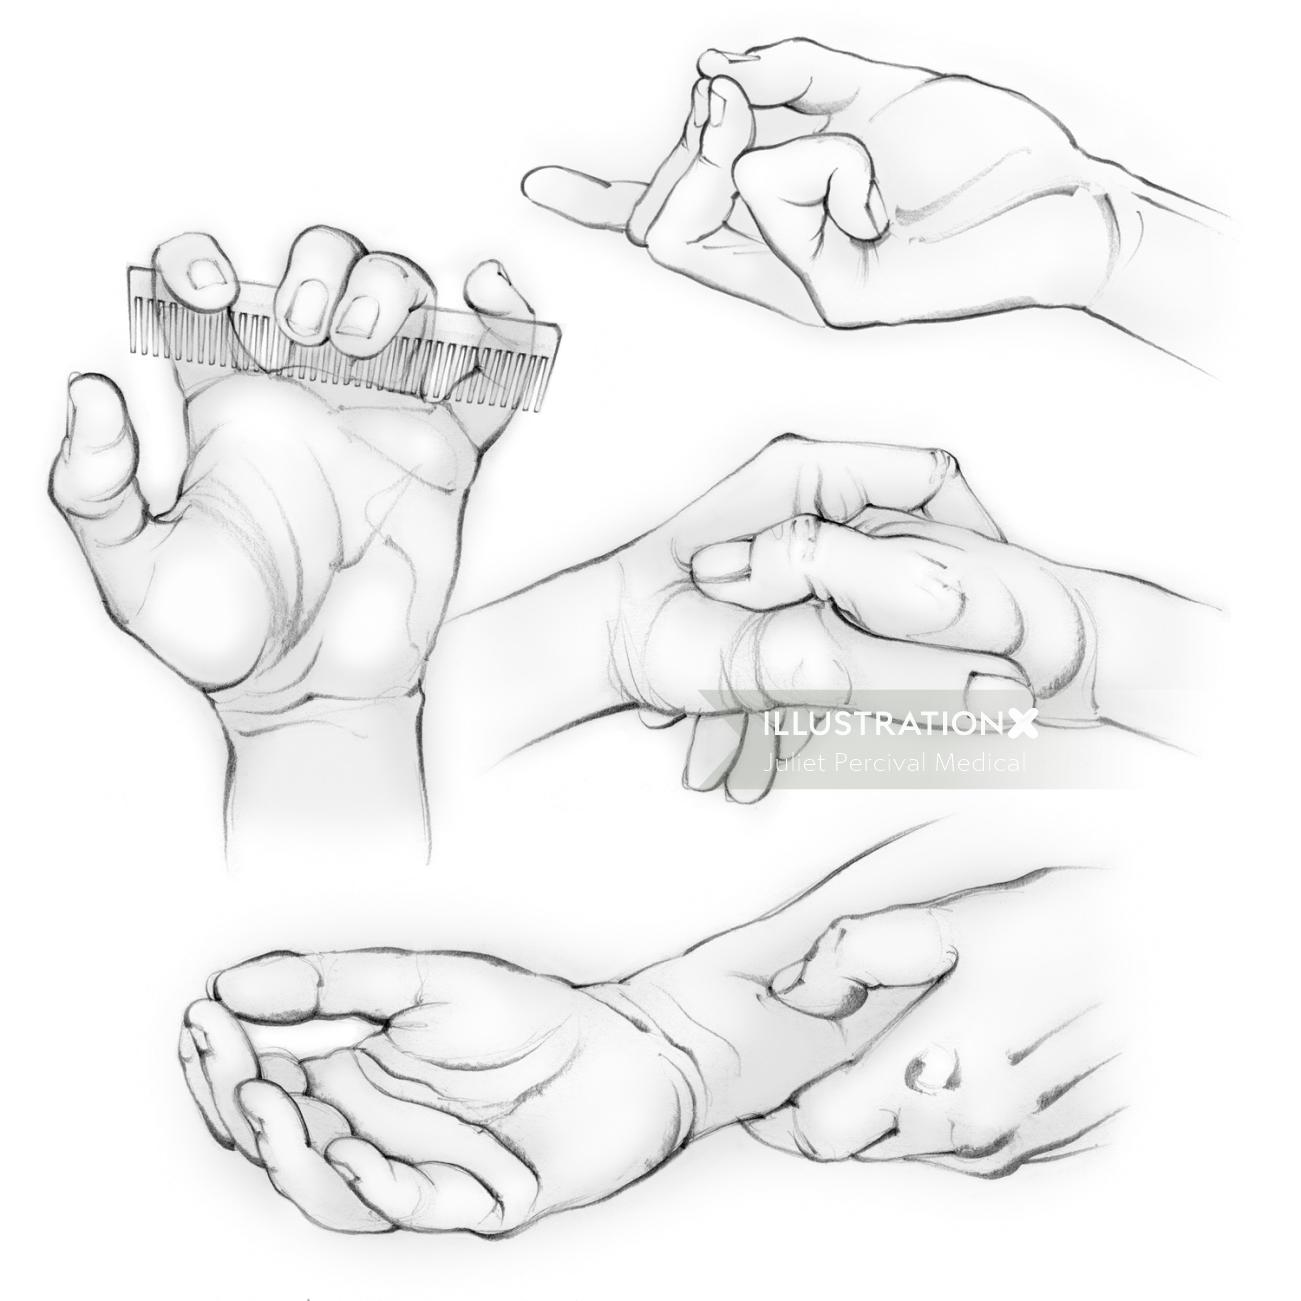 Acupressure2' from 'The Baby-Making Bible'  for hand